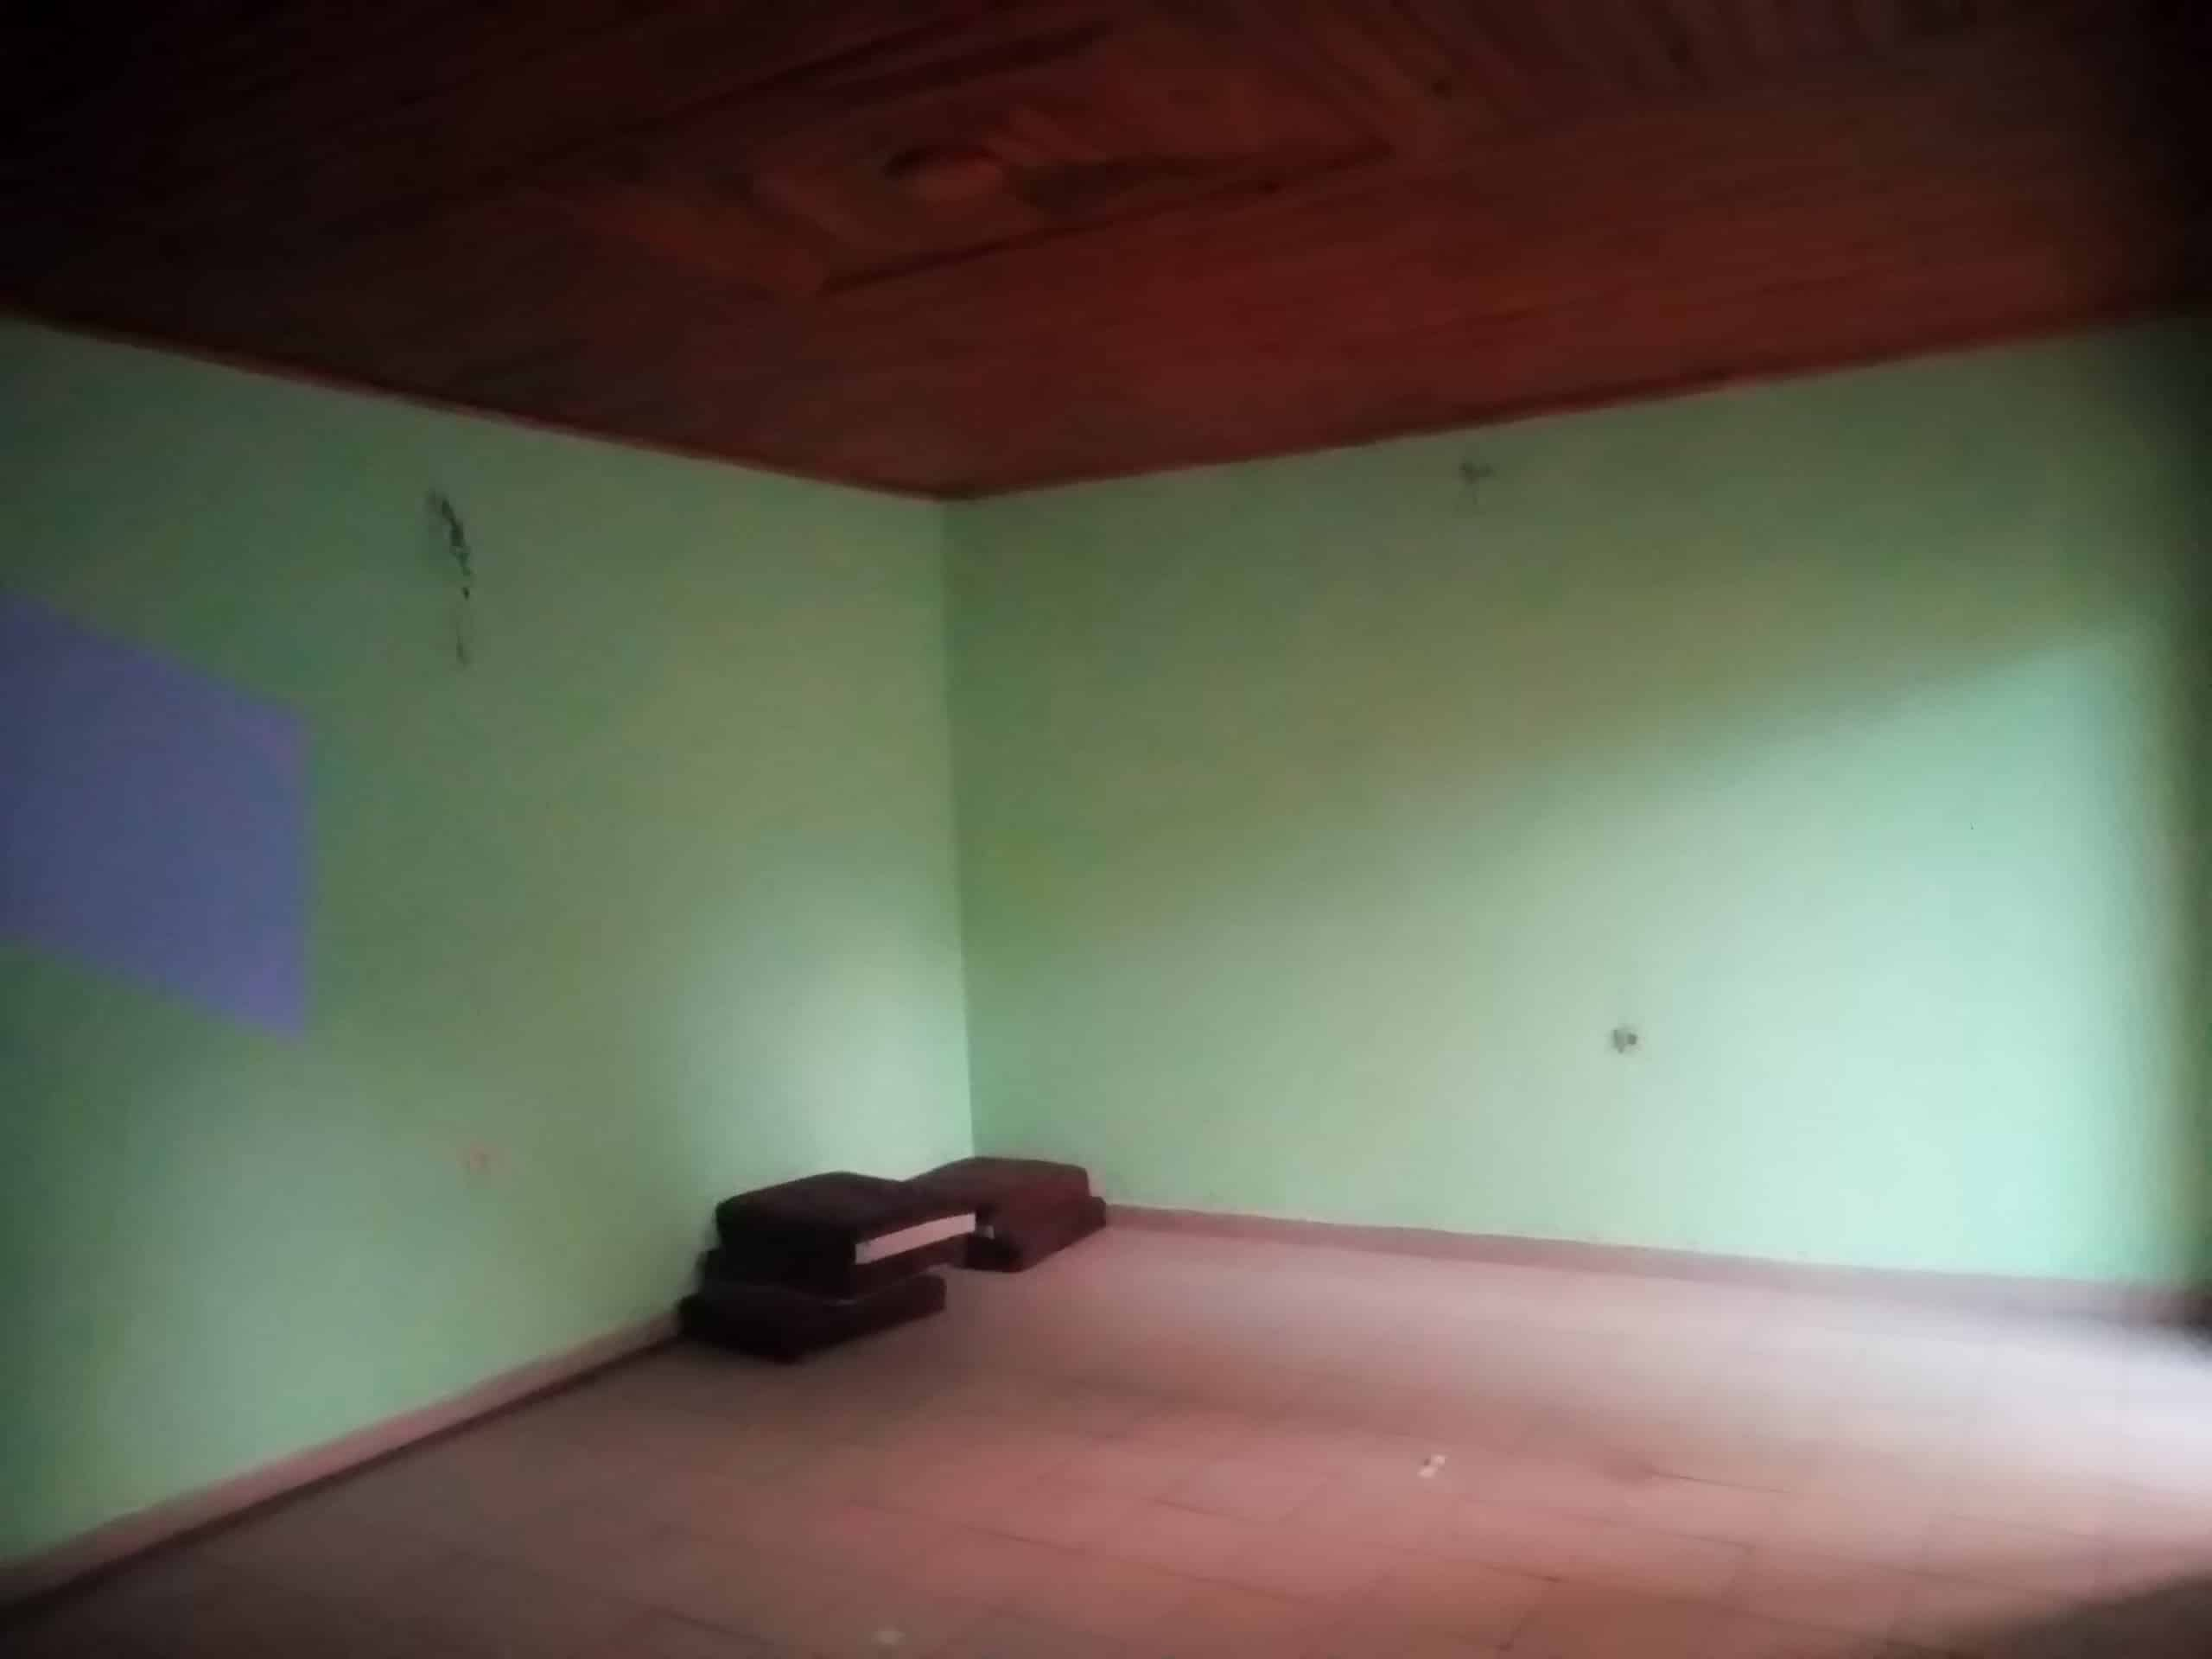 Apartment to rent - Douala, Makepe, BM - 1 living room(s), 2 bedroom(s), 1 bathroom(s) - 75 000 FCFA / month